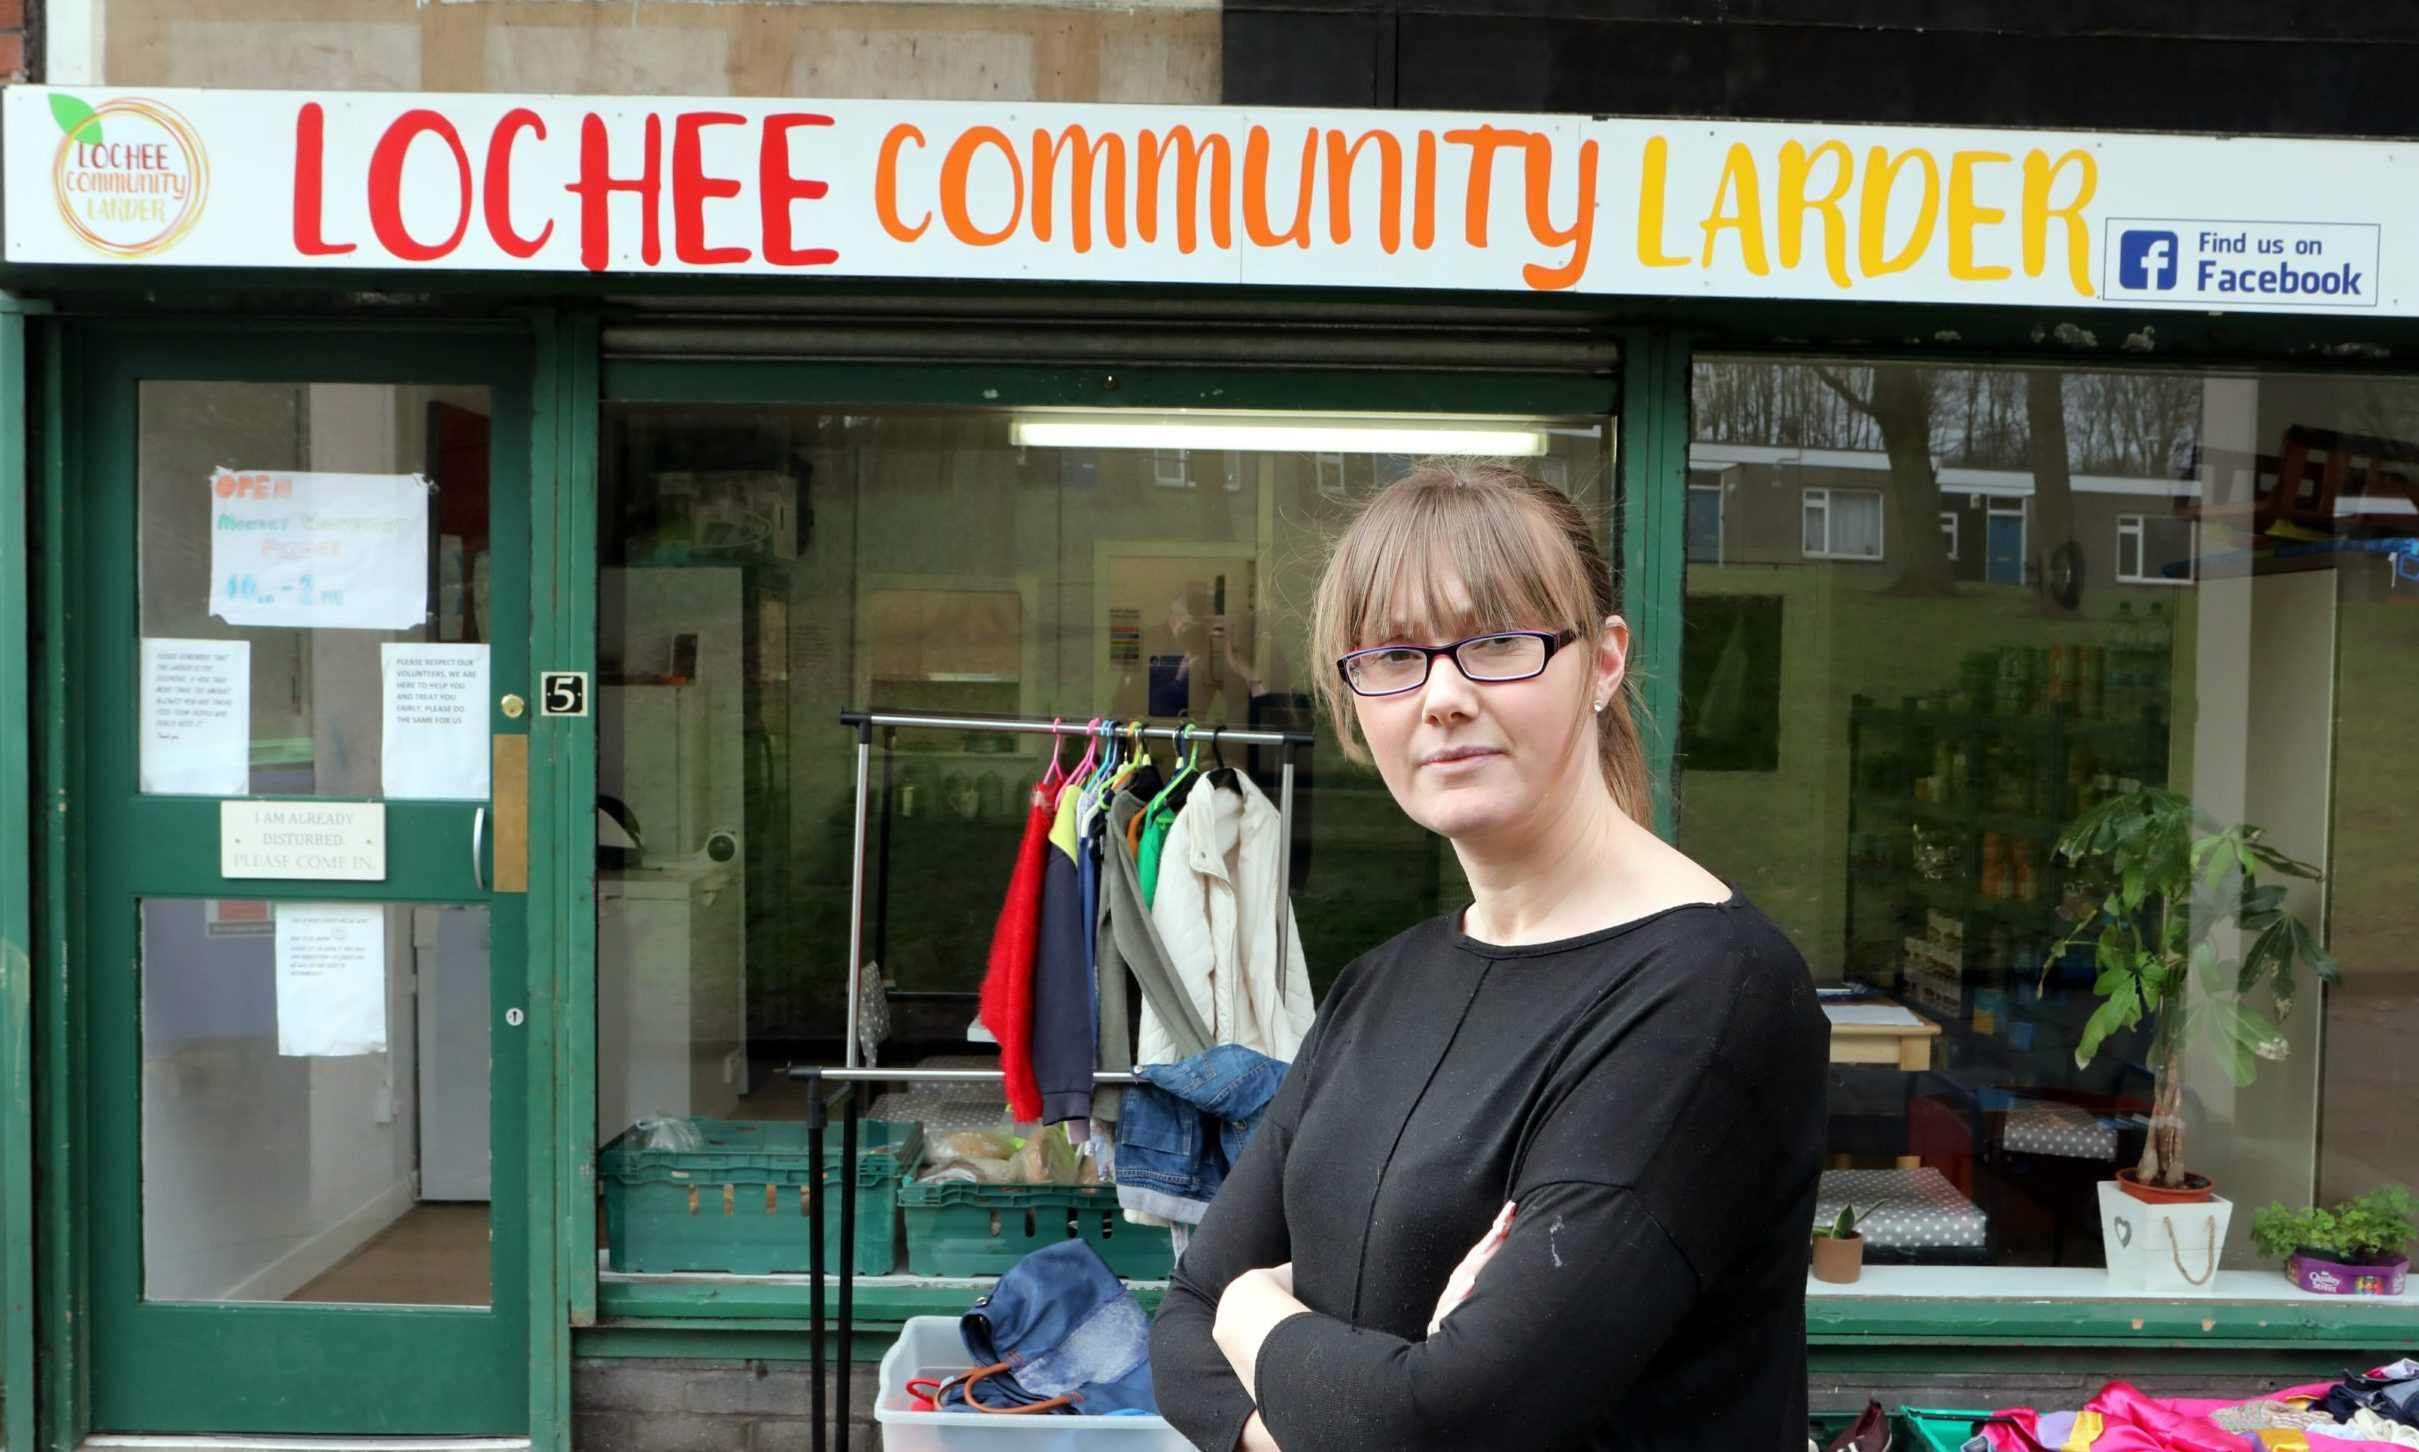 Samantha Bruce, of Lochee Community Larder.